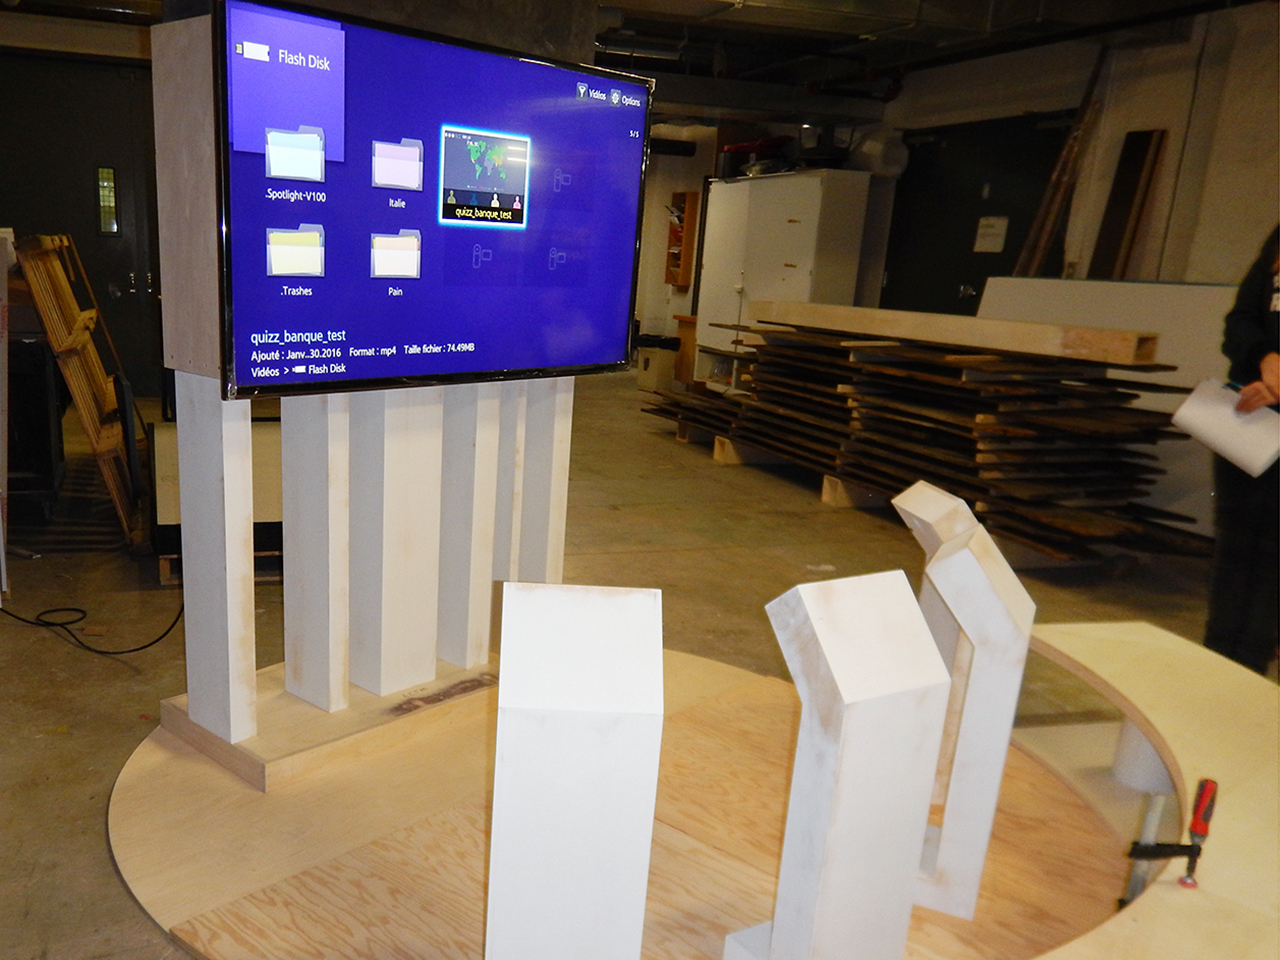 wooden forms and a large monitor in a workshop